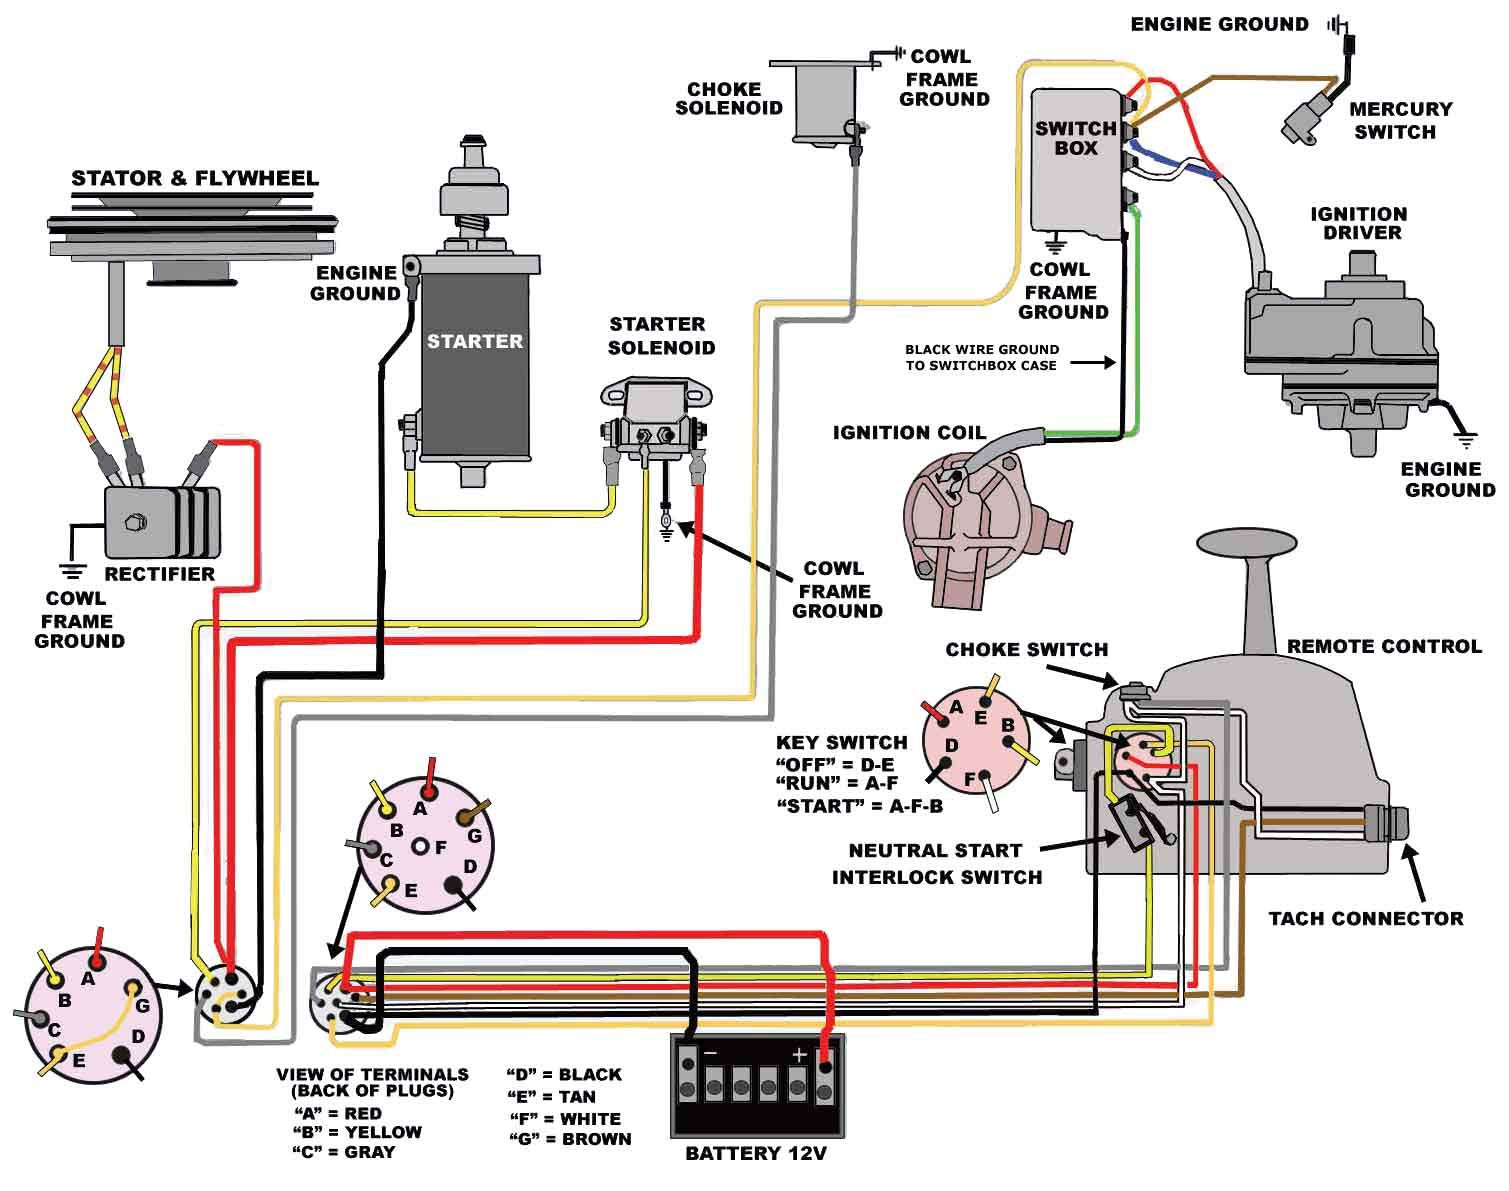 mercury 45 jet wiring diagram mercury wiring diagrams online mercury wiring diagram mercury wiring diagrams online